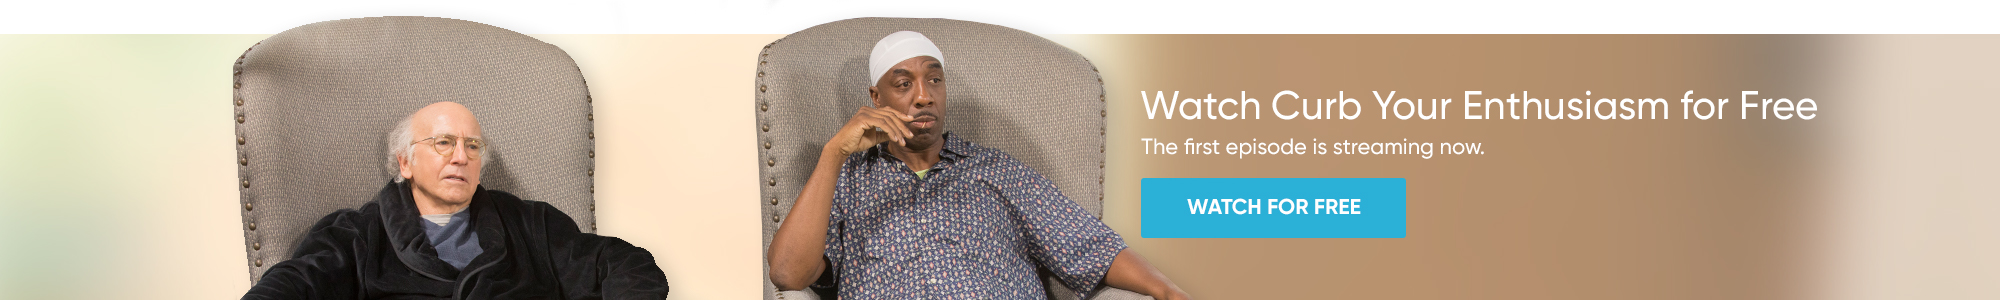 Curb Your Enthusiasm - Official Website for the HBO Series